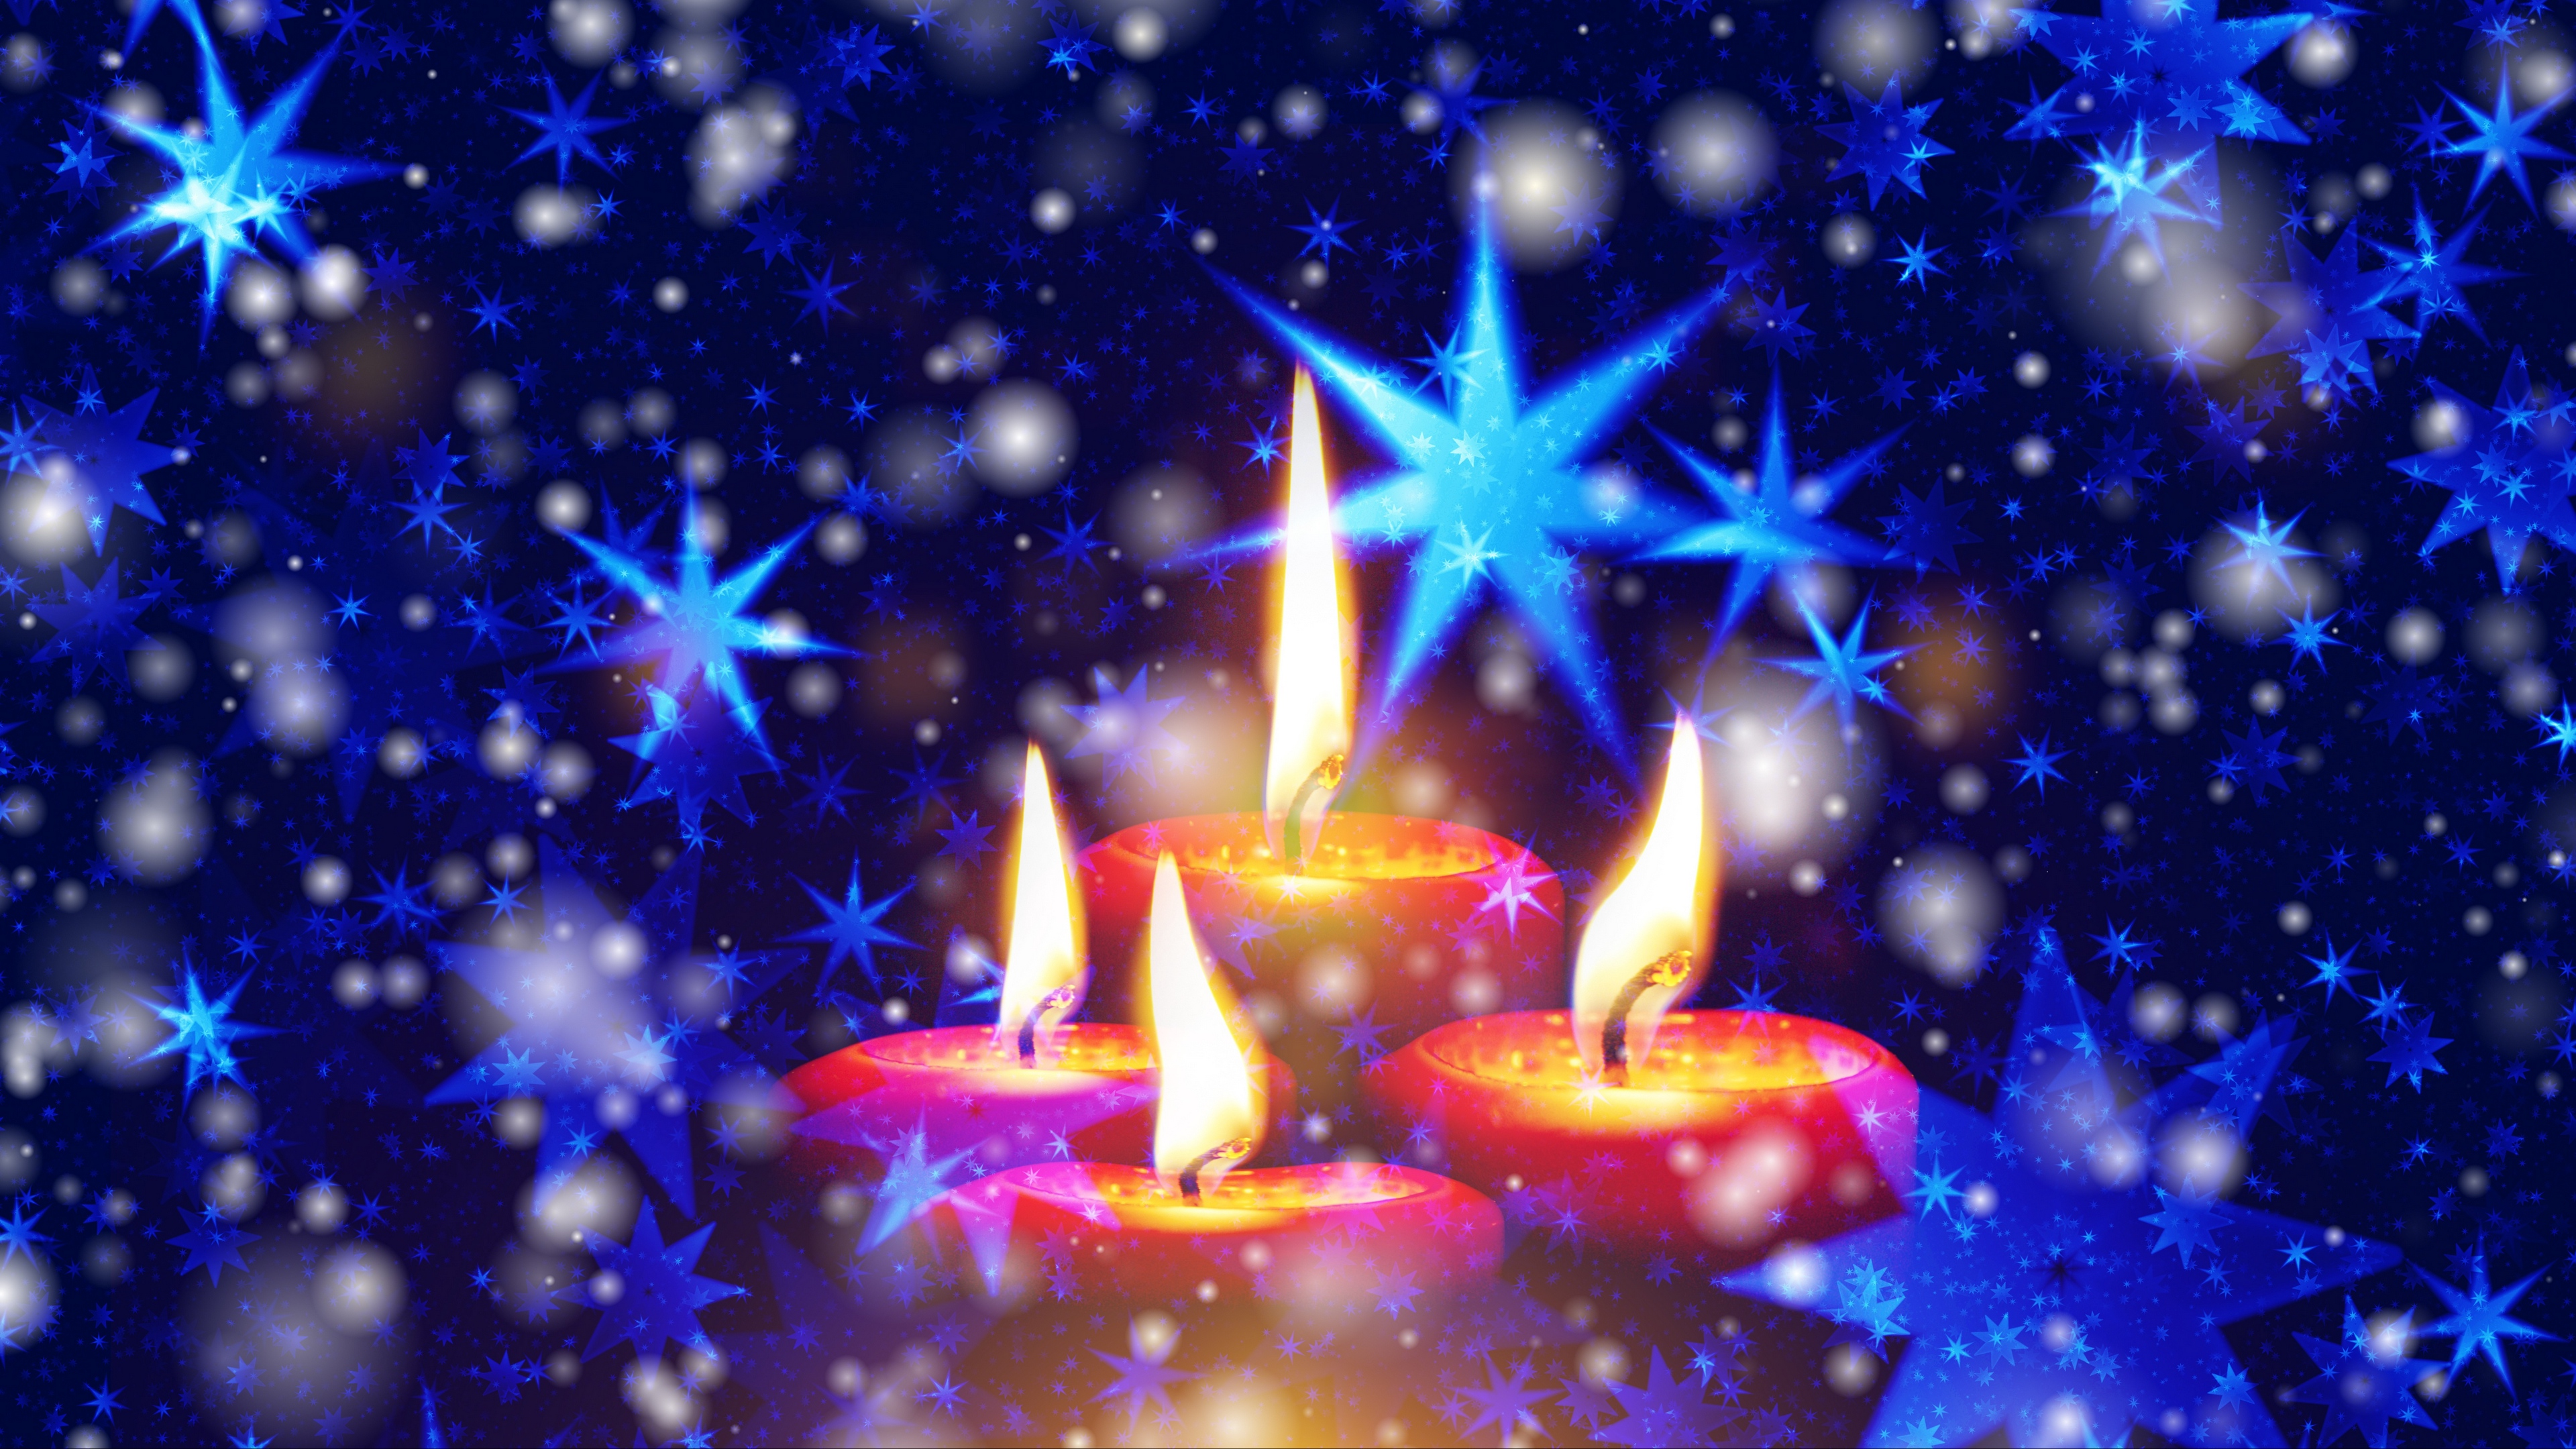 candles stars snowflakes glitter 4k 1538344973 - candles, stars, snowflakes, glitter 4k - Stars, snowflakes, Candles